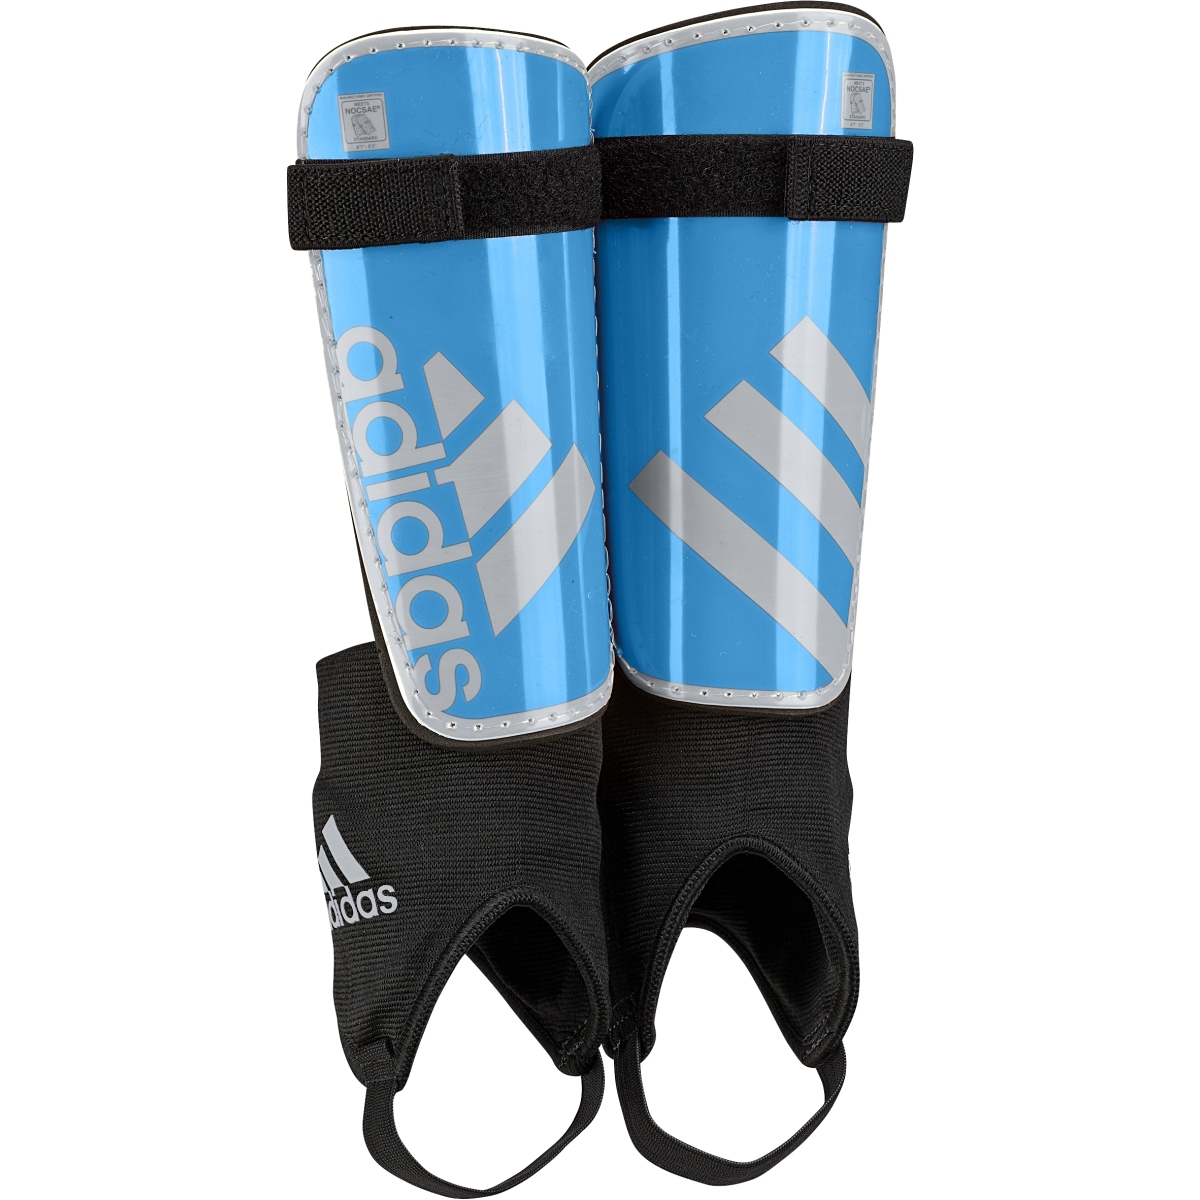 10 71 Adidas Youth Ghost Soccer Shinguards Blue Silver